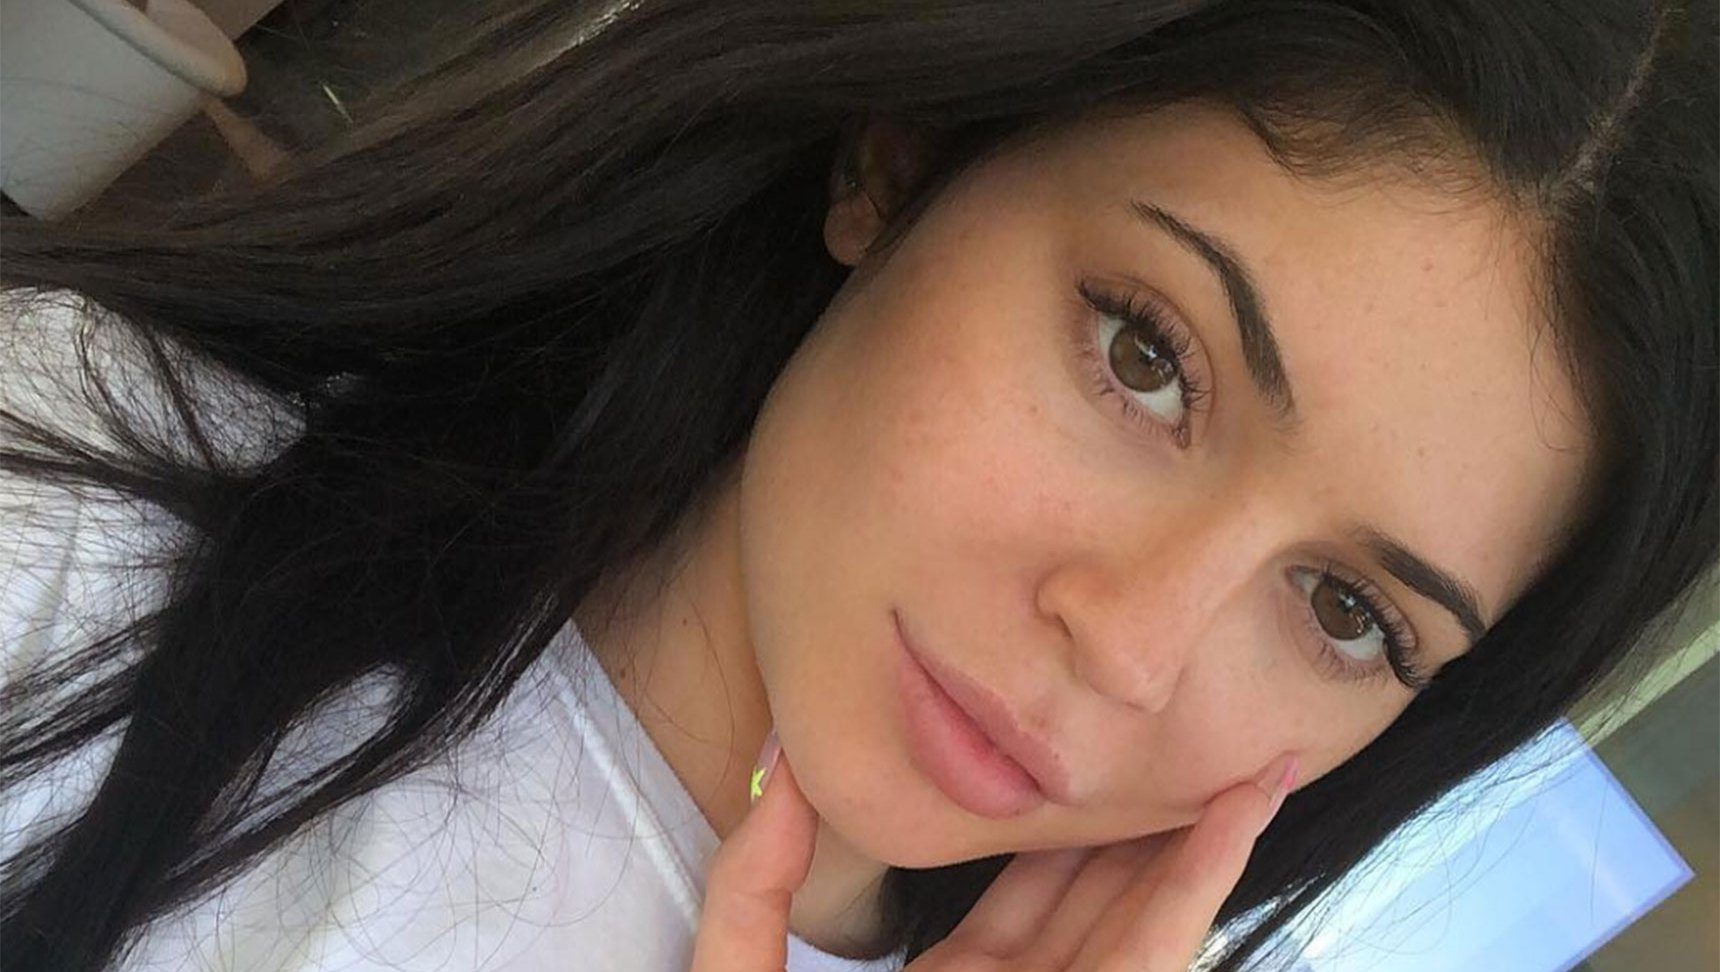 Kylie Jenner and Kate Hudson Show Off Their Makeup-Free Glows